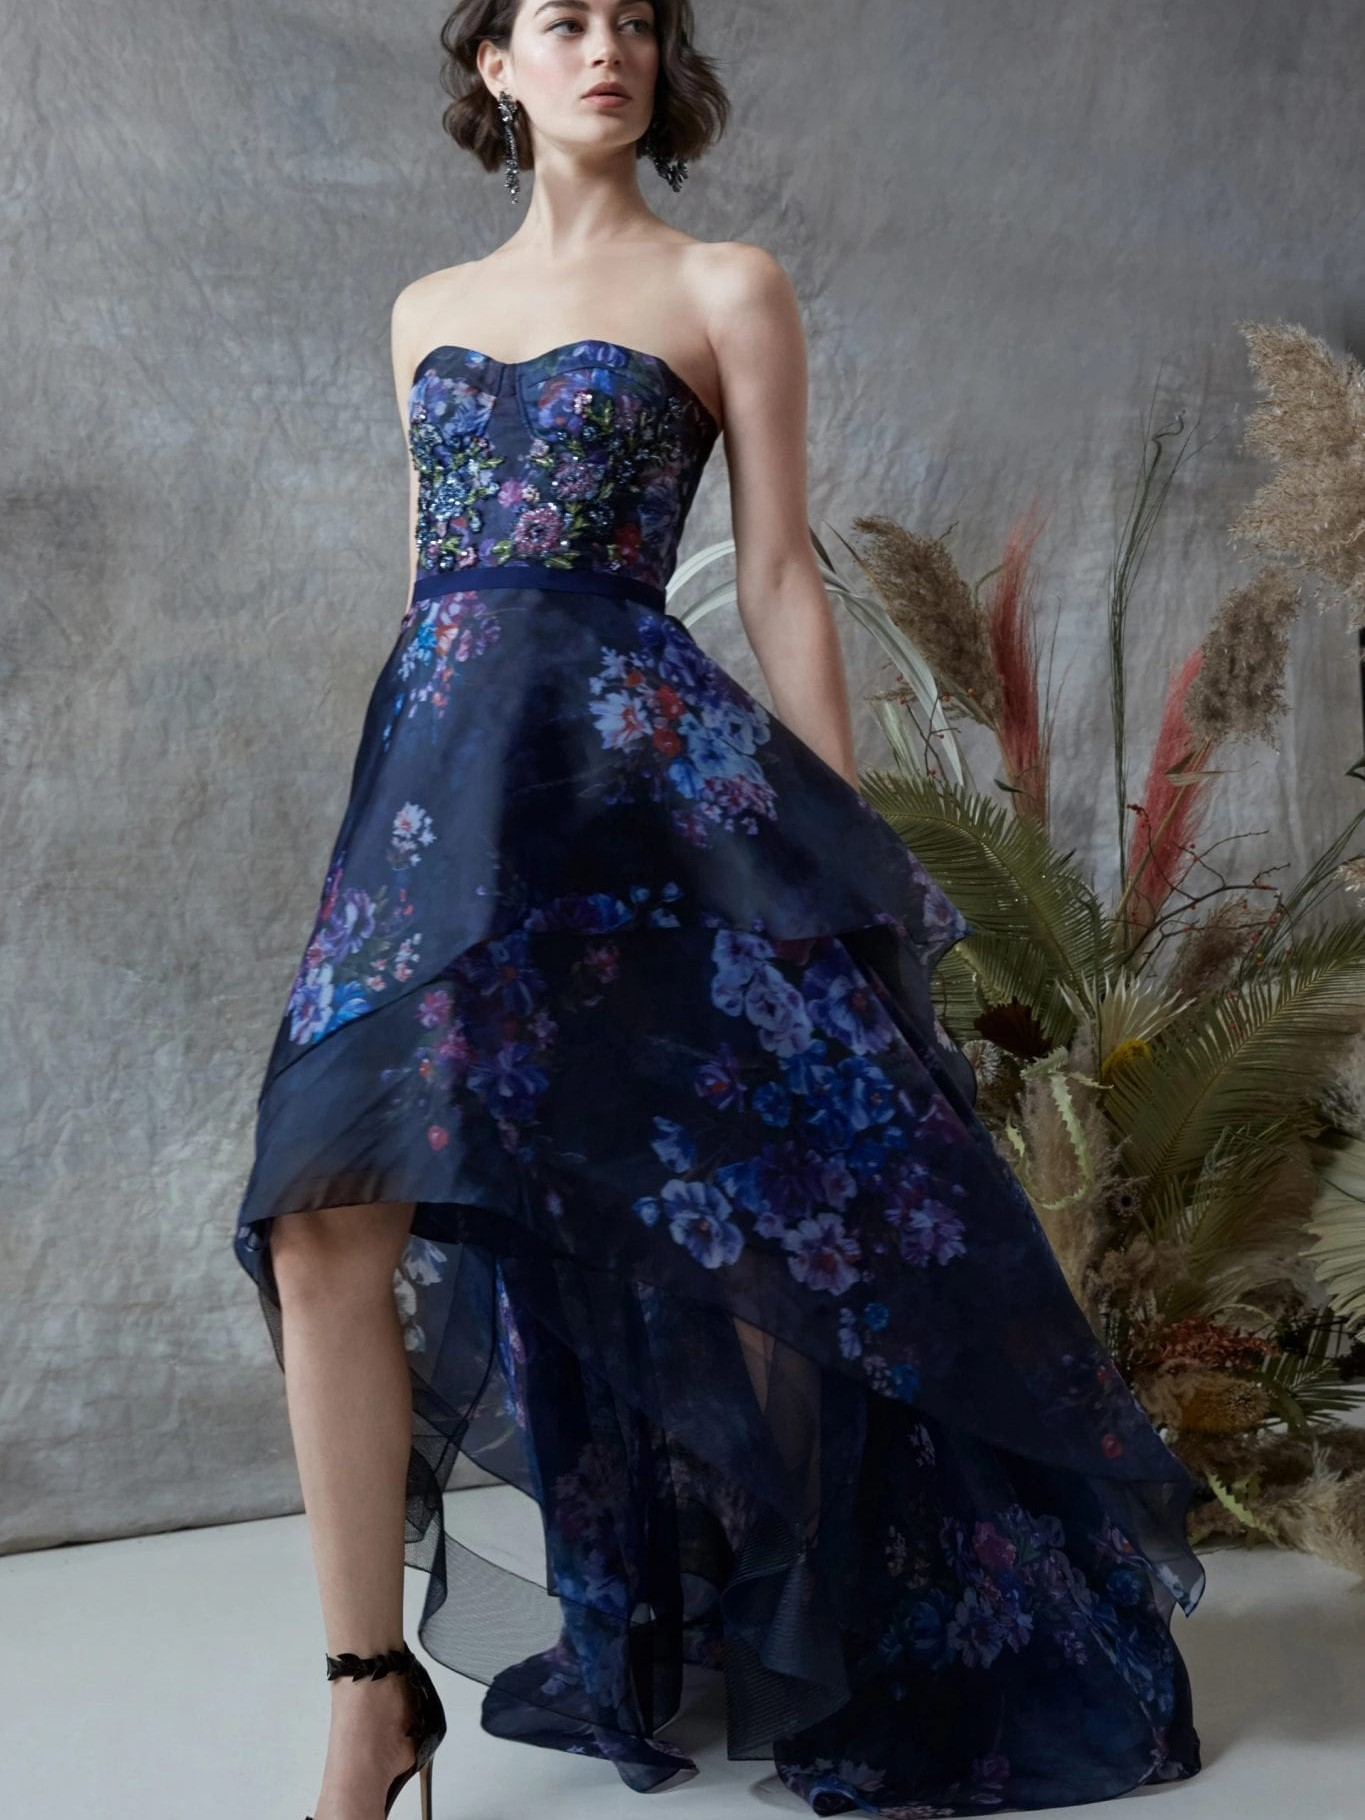 Statement Evening Gowns You Should Be Adding To Your Christmas Wishlist